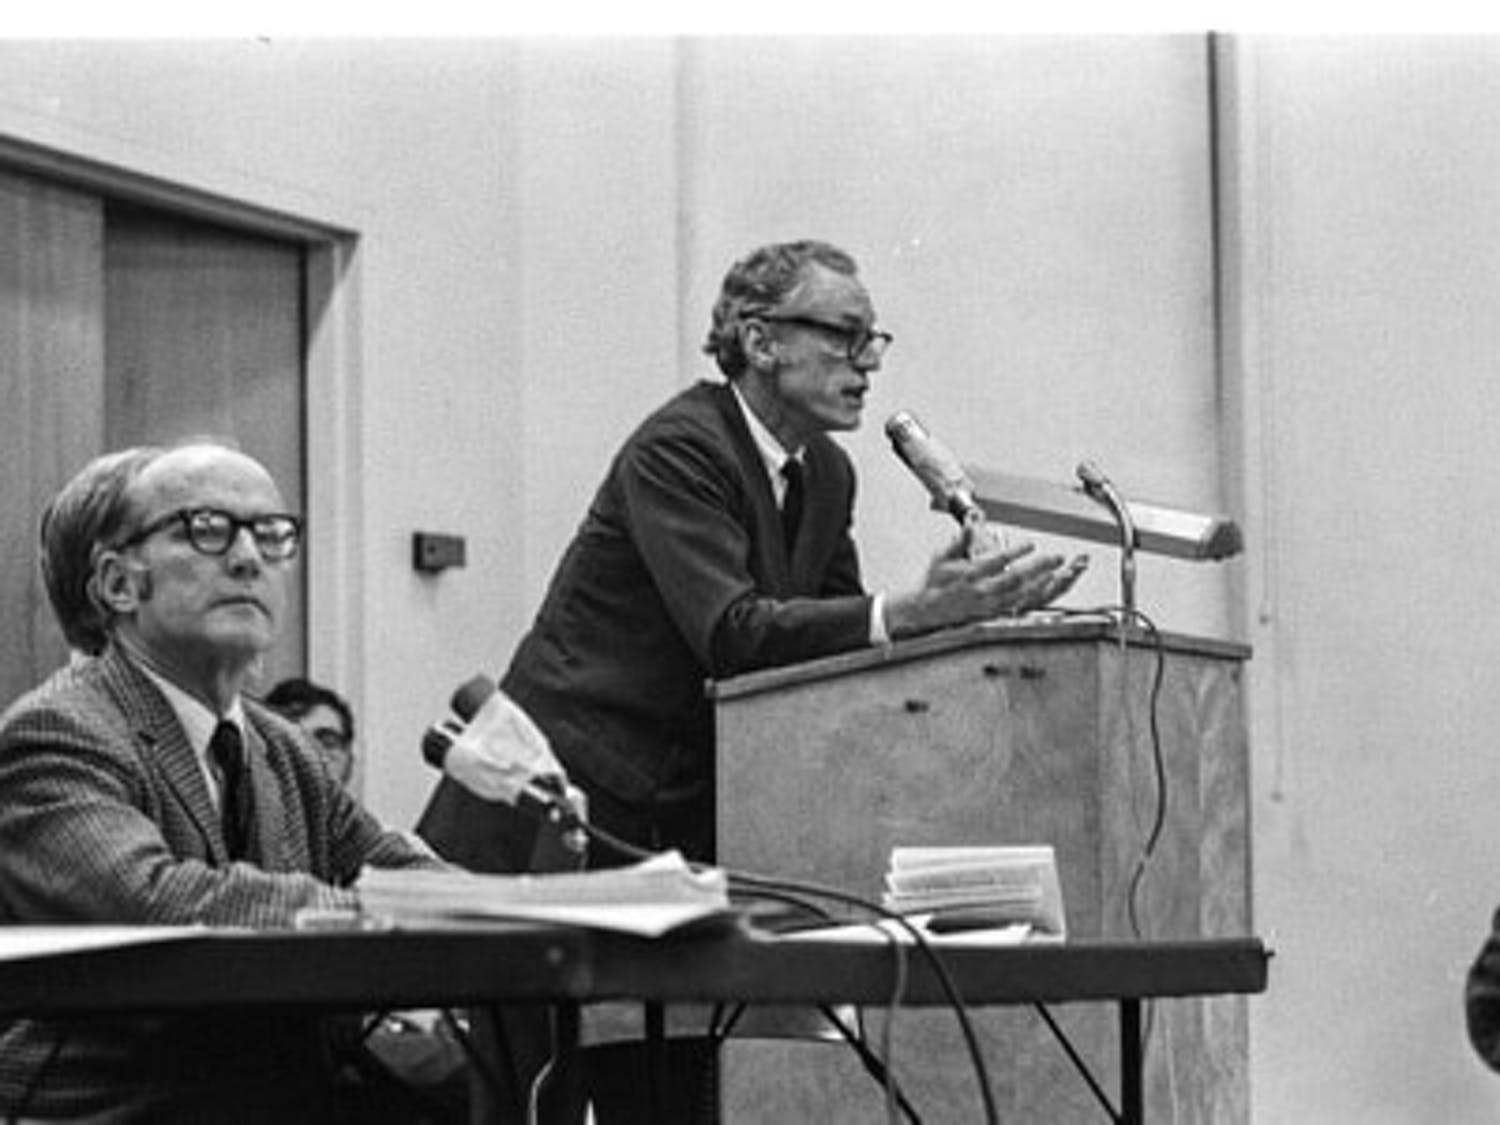 Peter Regan speaking at a faculty senate meeting in 1970.